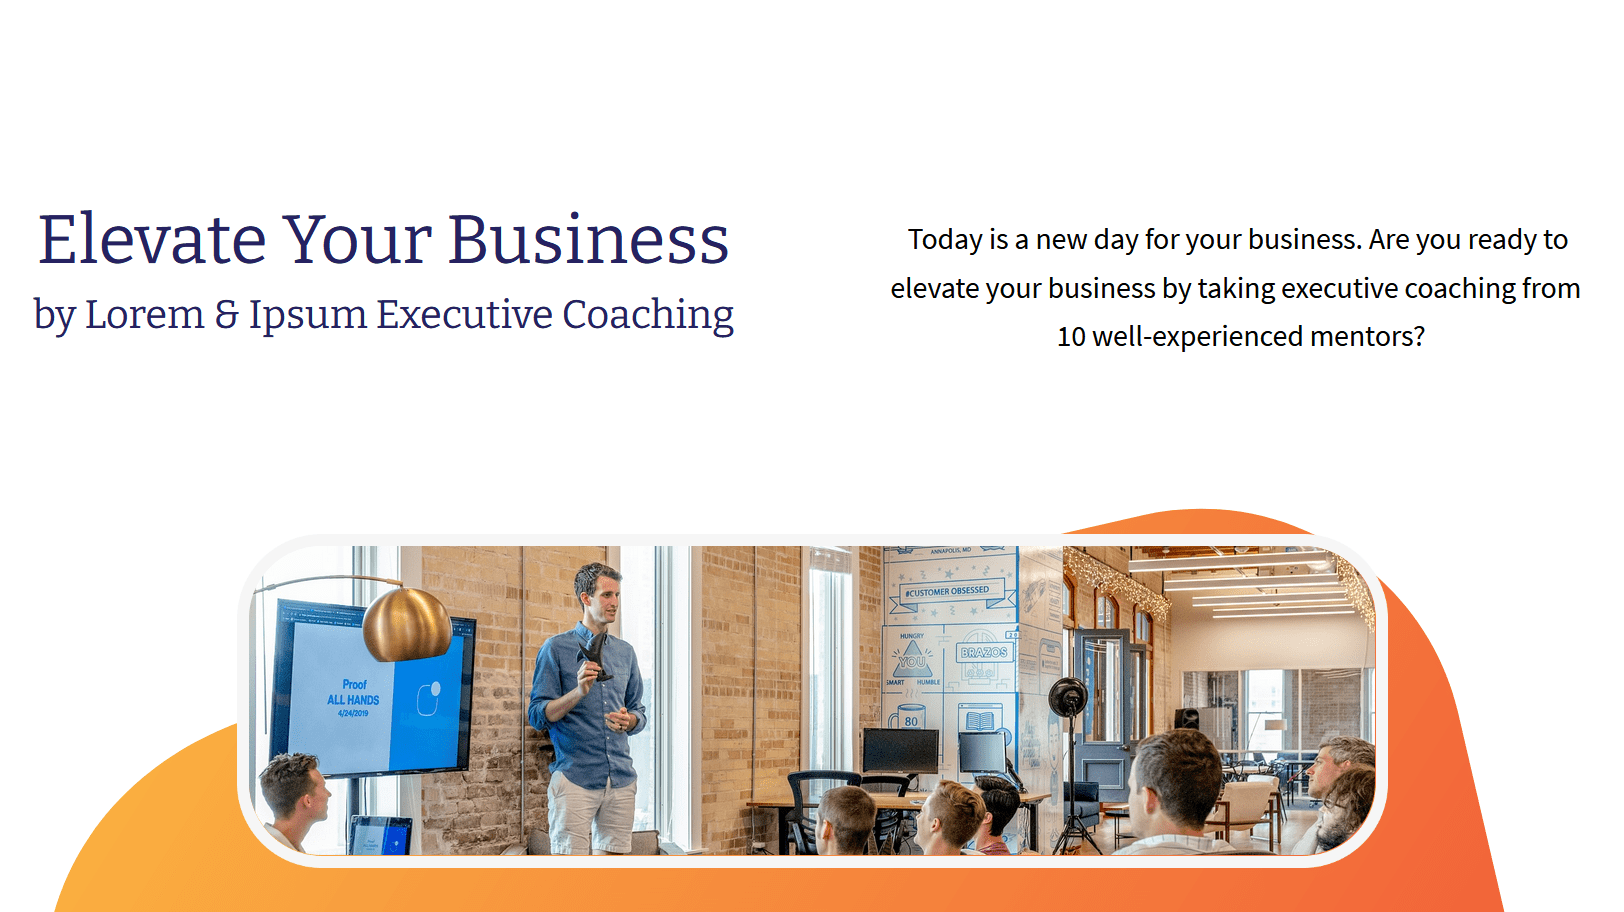 Outline what your coaching will provide, your value proposition, action plan and general introduction. Explain why you are the go-to coach for the job and why you can deliver the content scope better than anyone else.